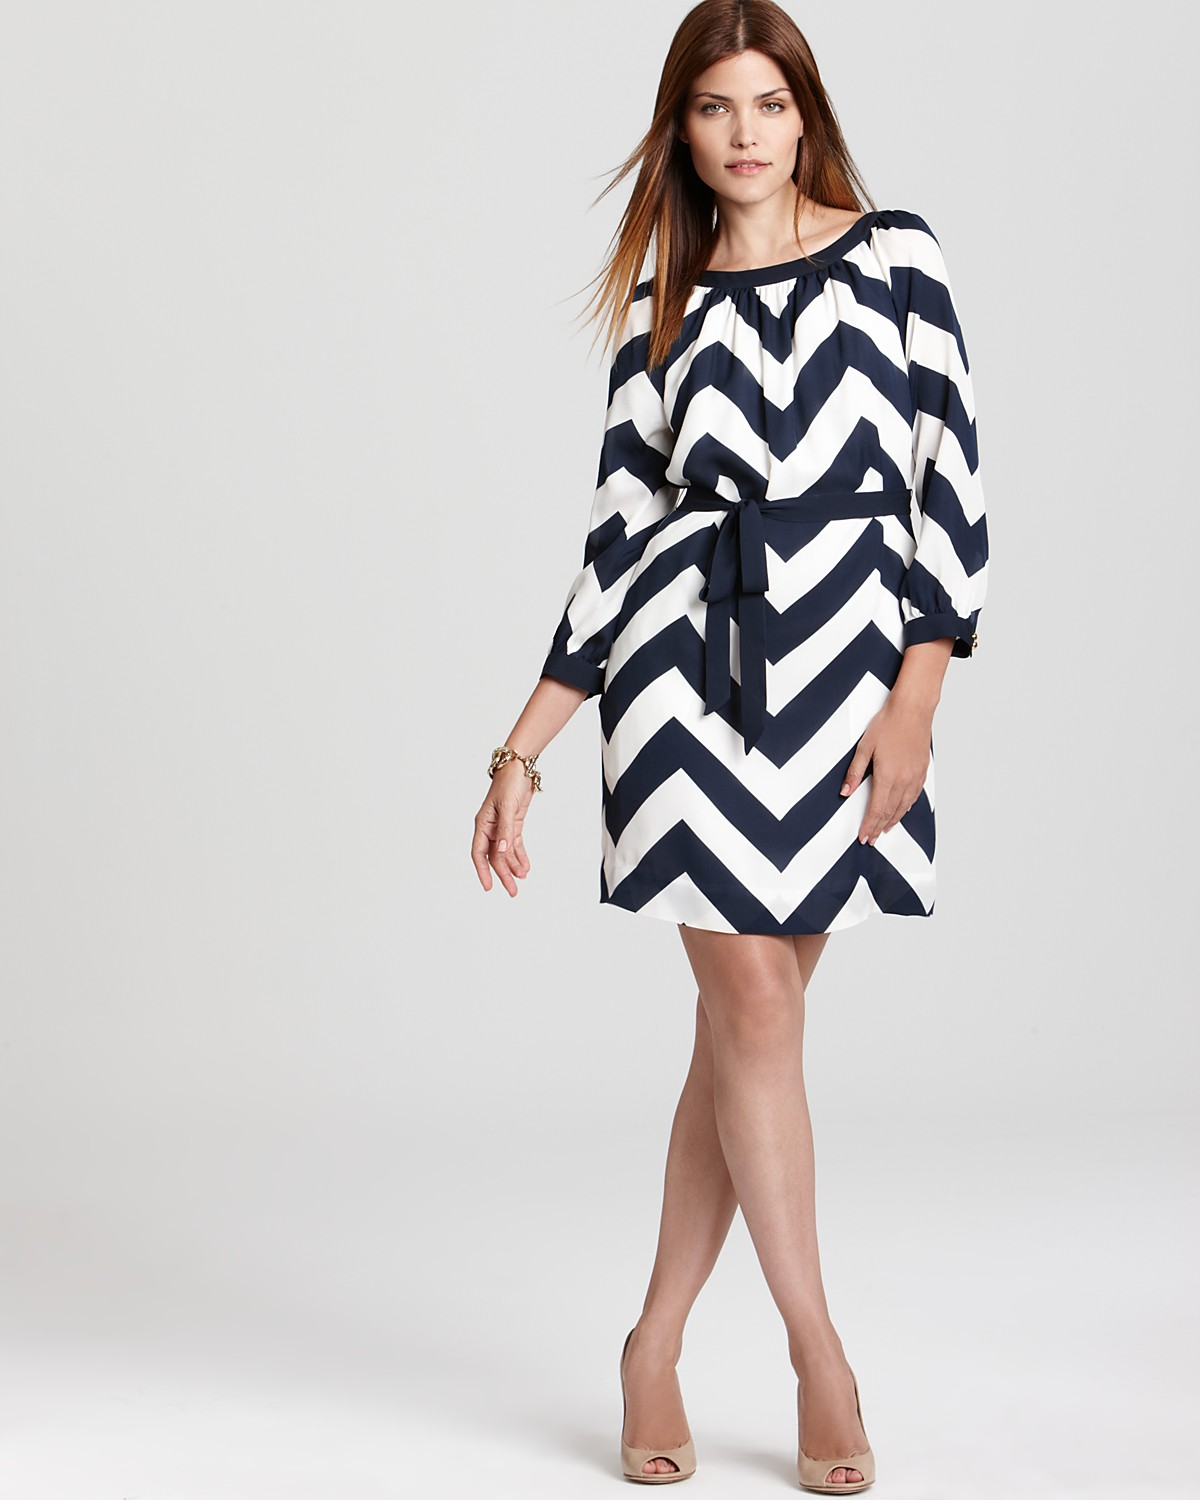 Chevron Print Dress Picture Collection | Dressed Up Girl